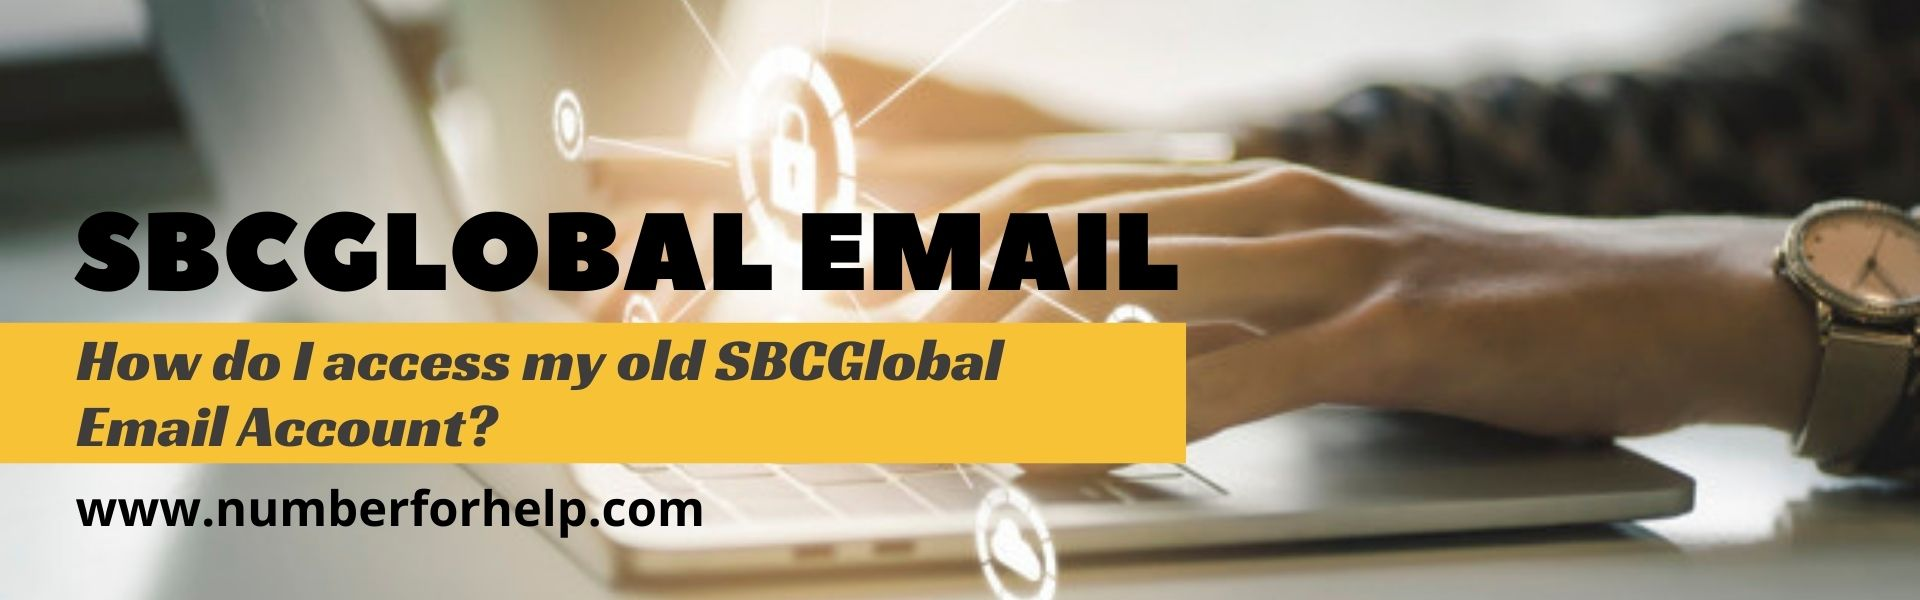 2021-02-01-02-17-30How do I access my old SBCGlobal Email Account